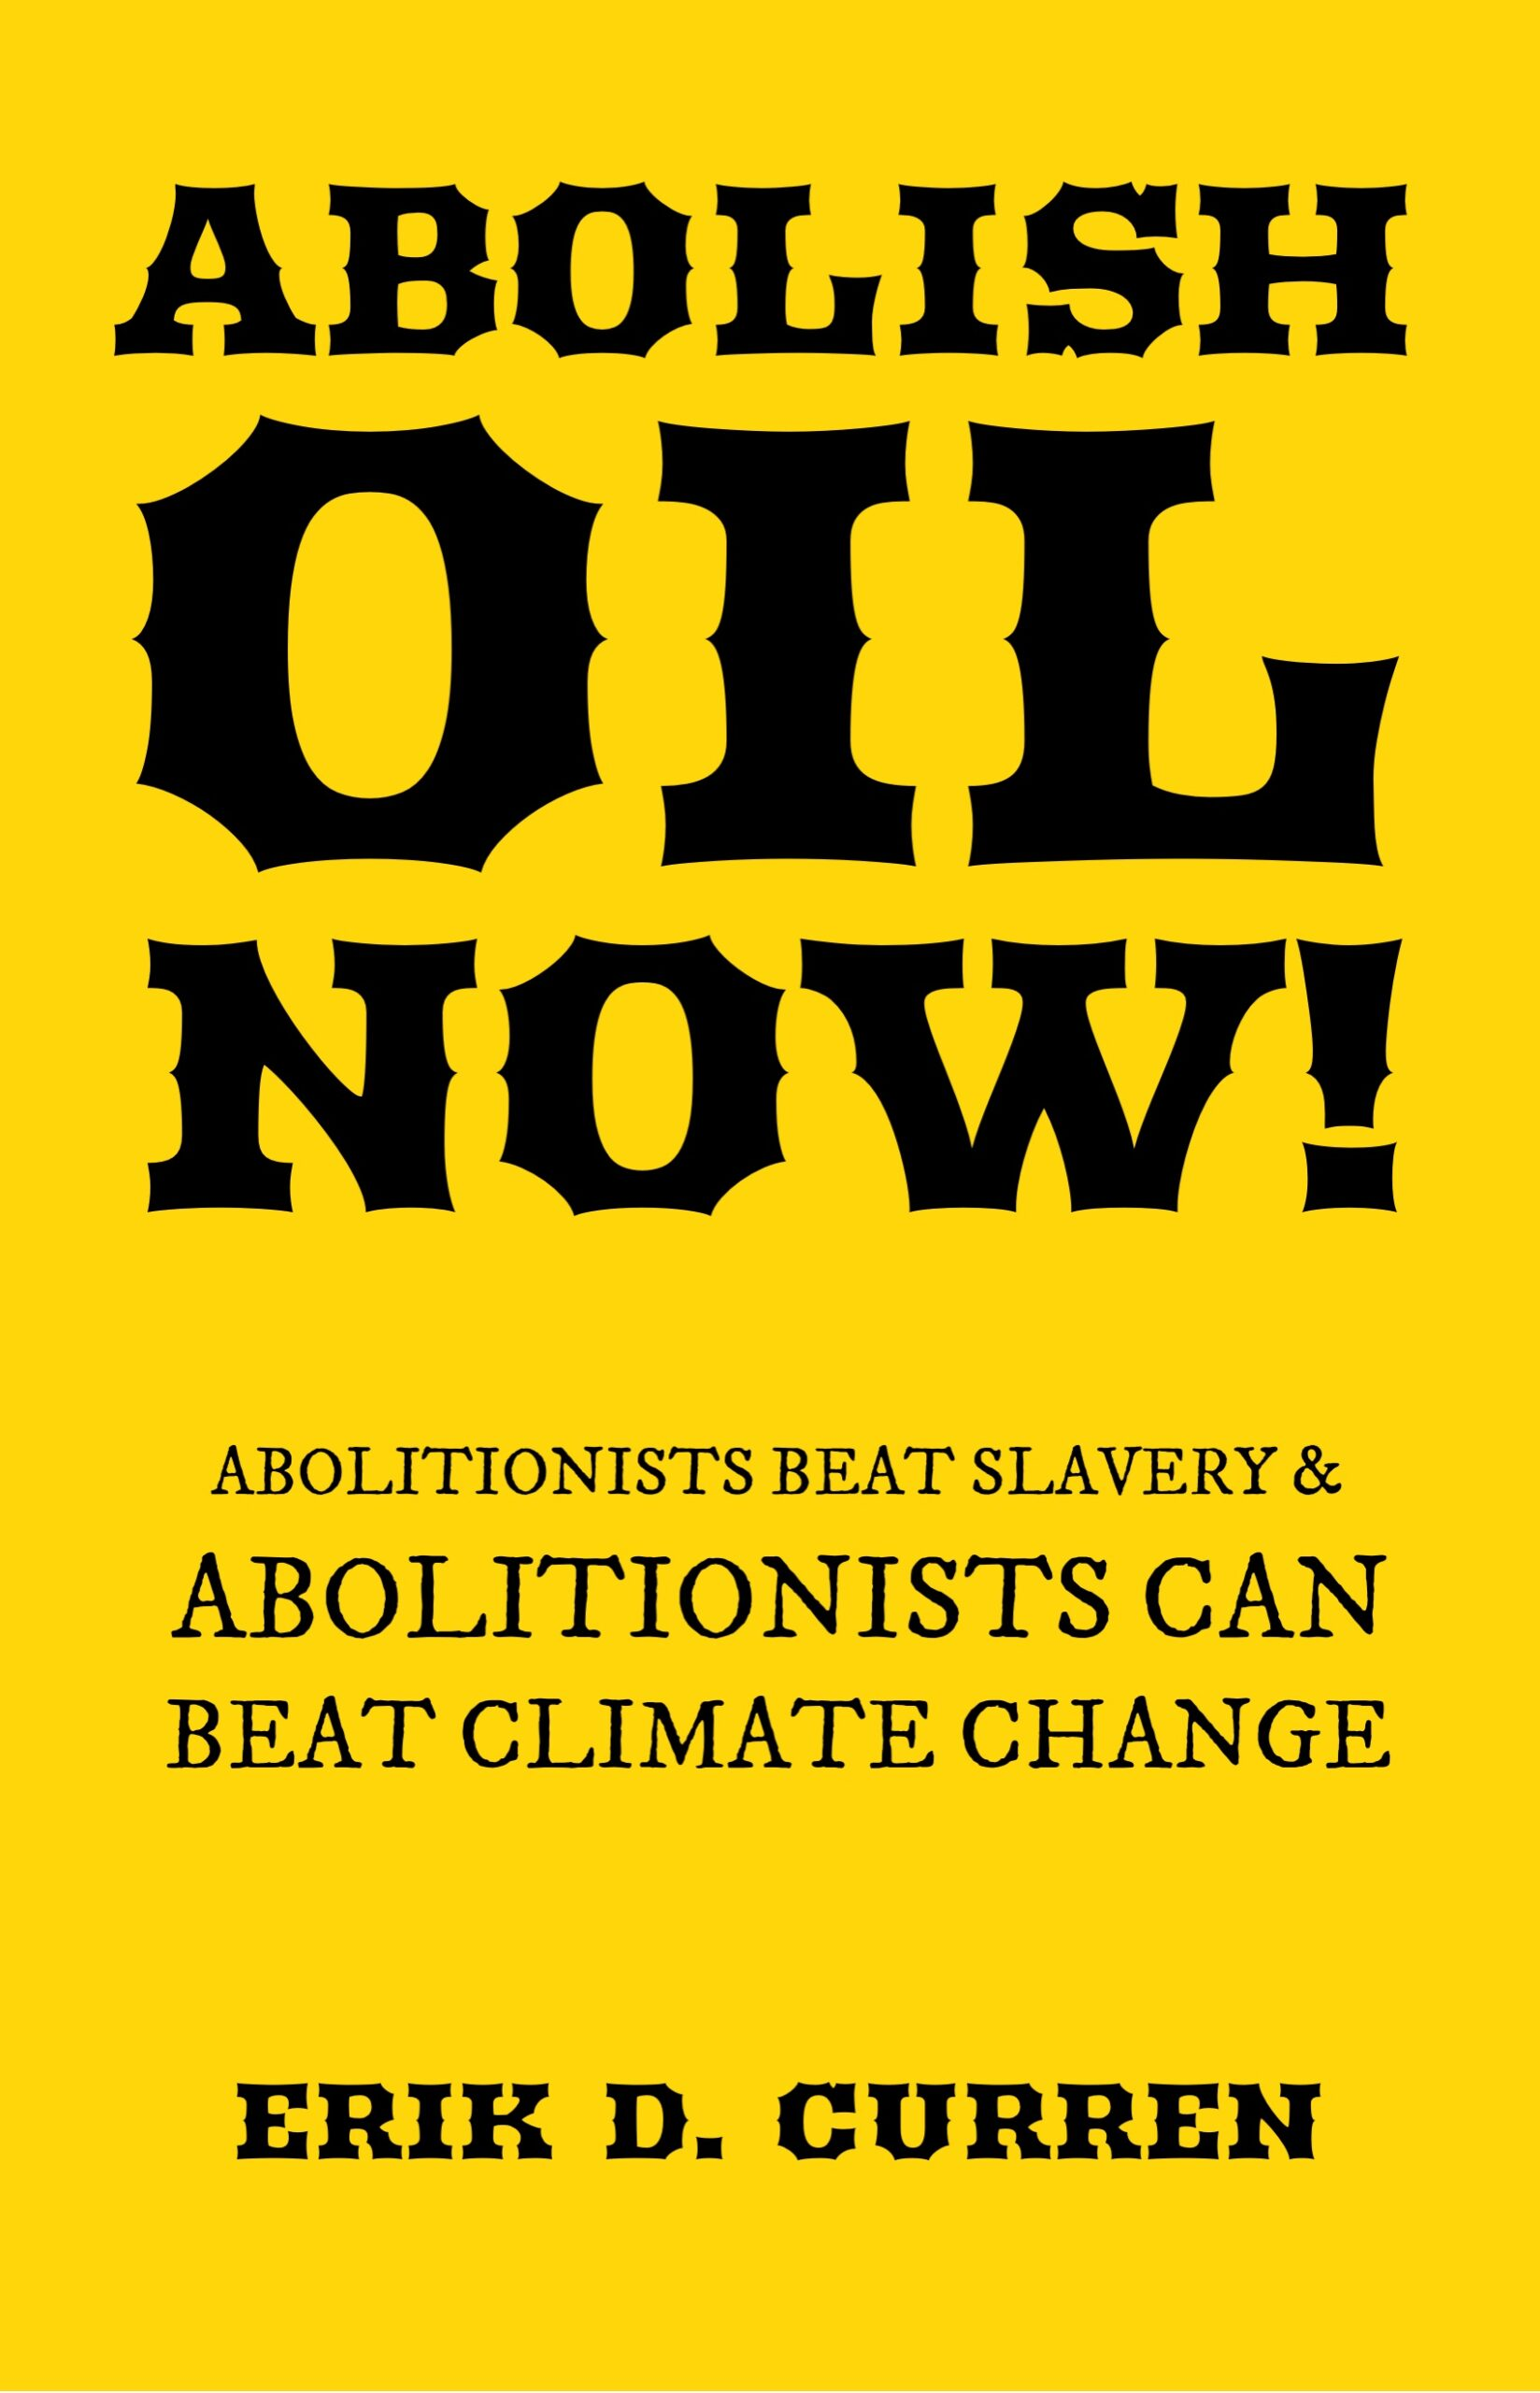 Abolish Oil Now! front cover